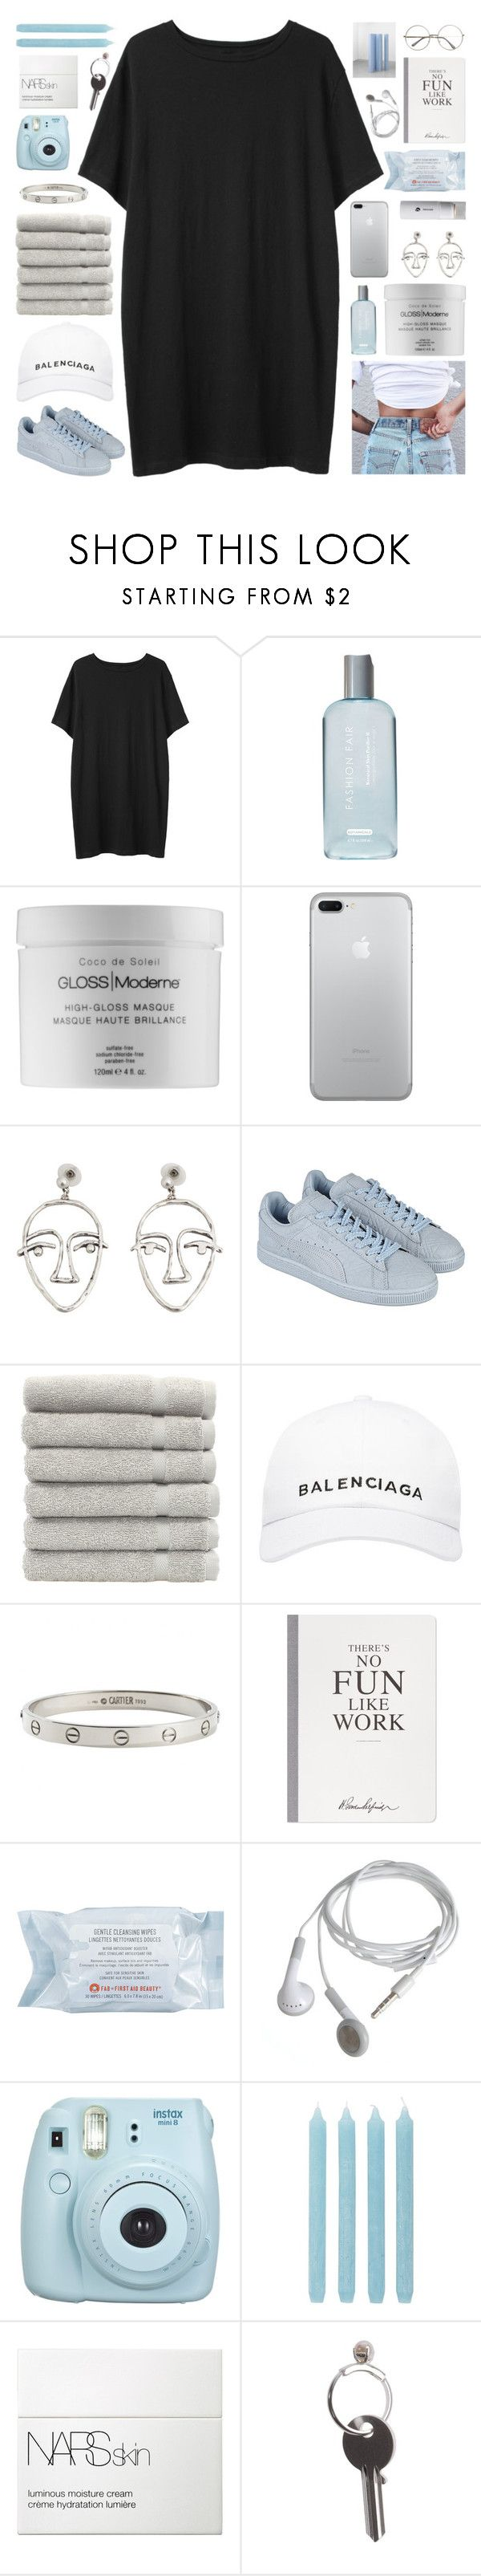 """COLLAB WITH VIA"" by constellation-s ❤ liked on Polyvore featuring Organic by John Patrick, Fashion Fair, GLOSS Moderne, MANGO, Puma, Linum Home Textiles, Balenciaga, Cartier, Selfridges and First Aid Beauty"